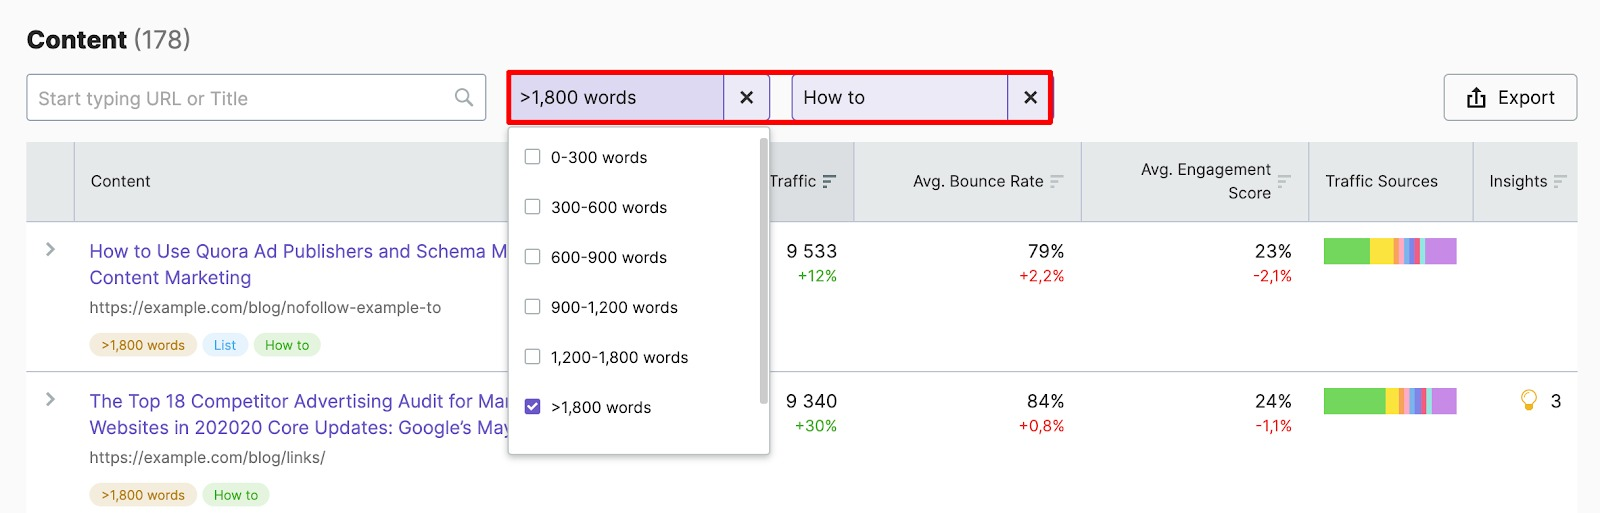 1800+ words How-tos